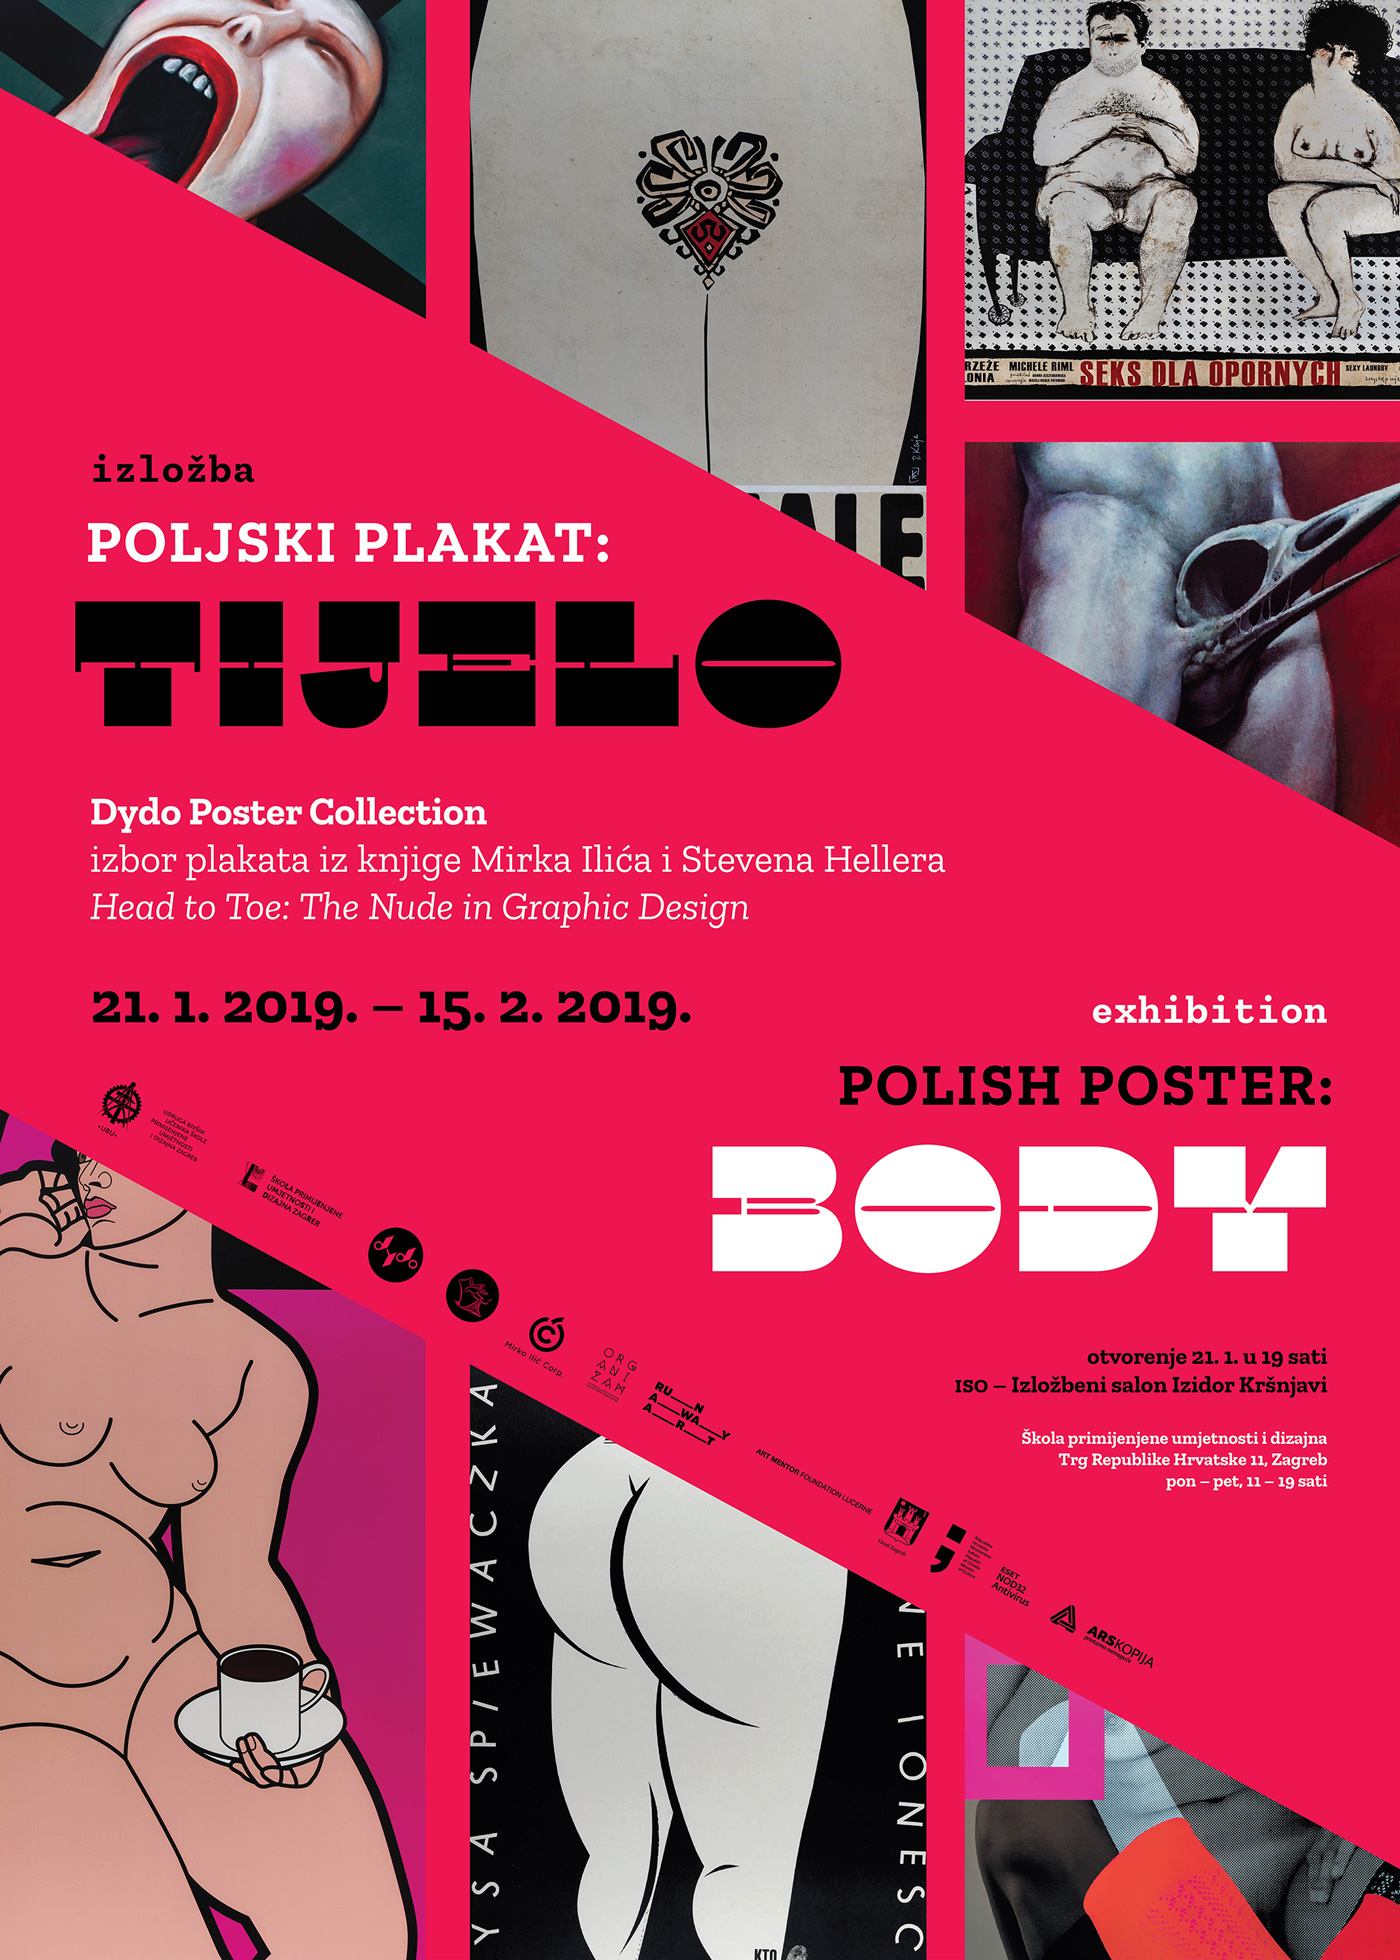 Polish Poster in Croatia: Body